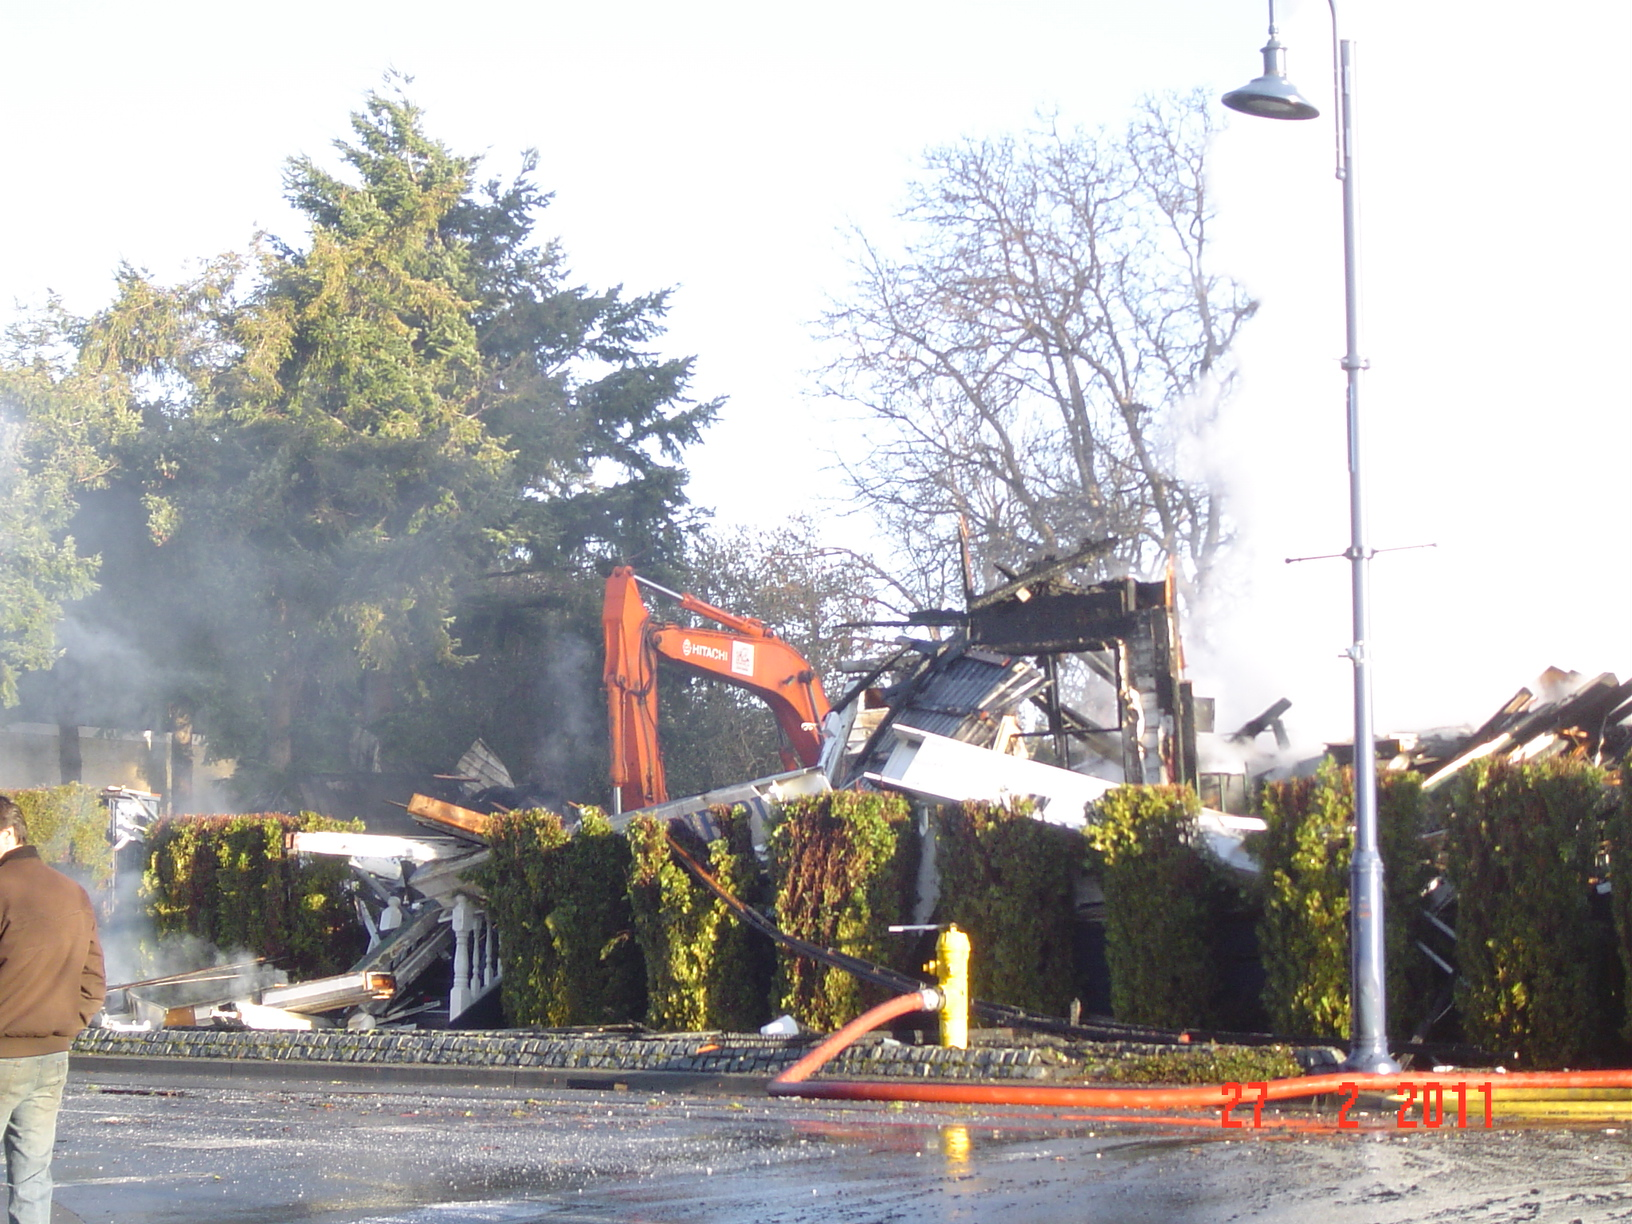 Demolition of the Lorne Hotel